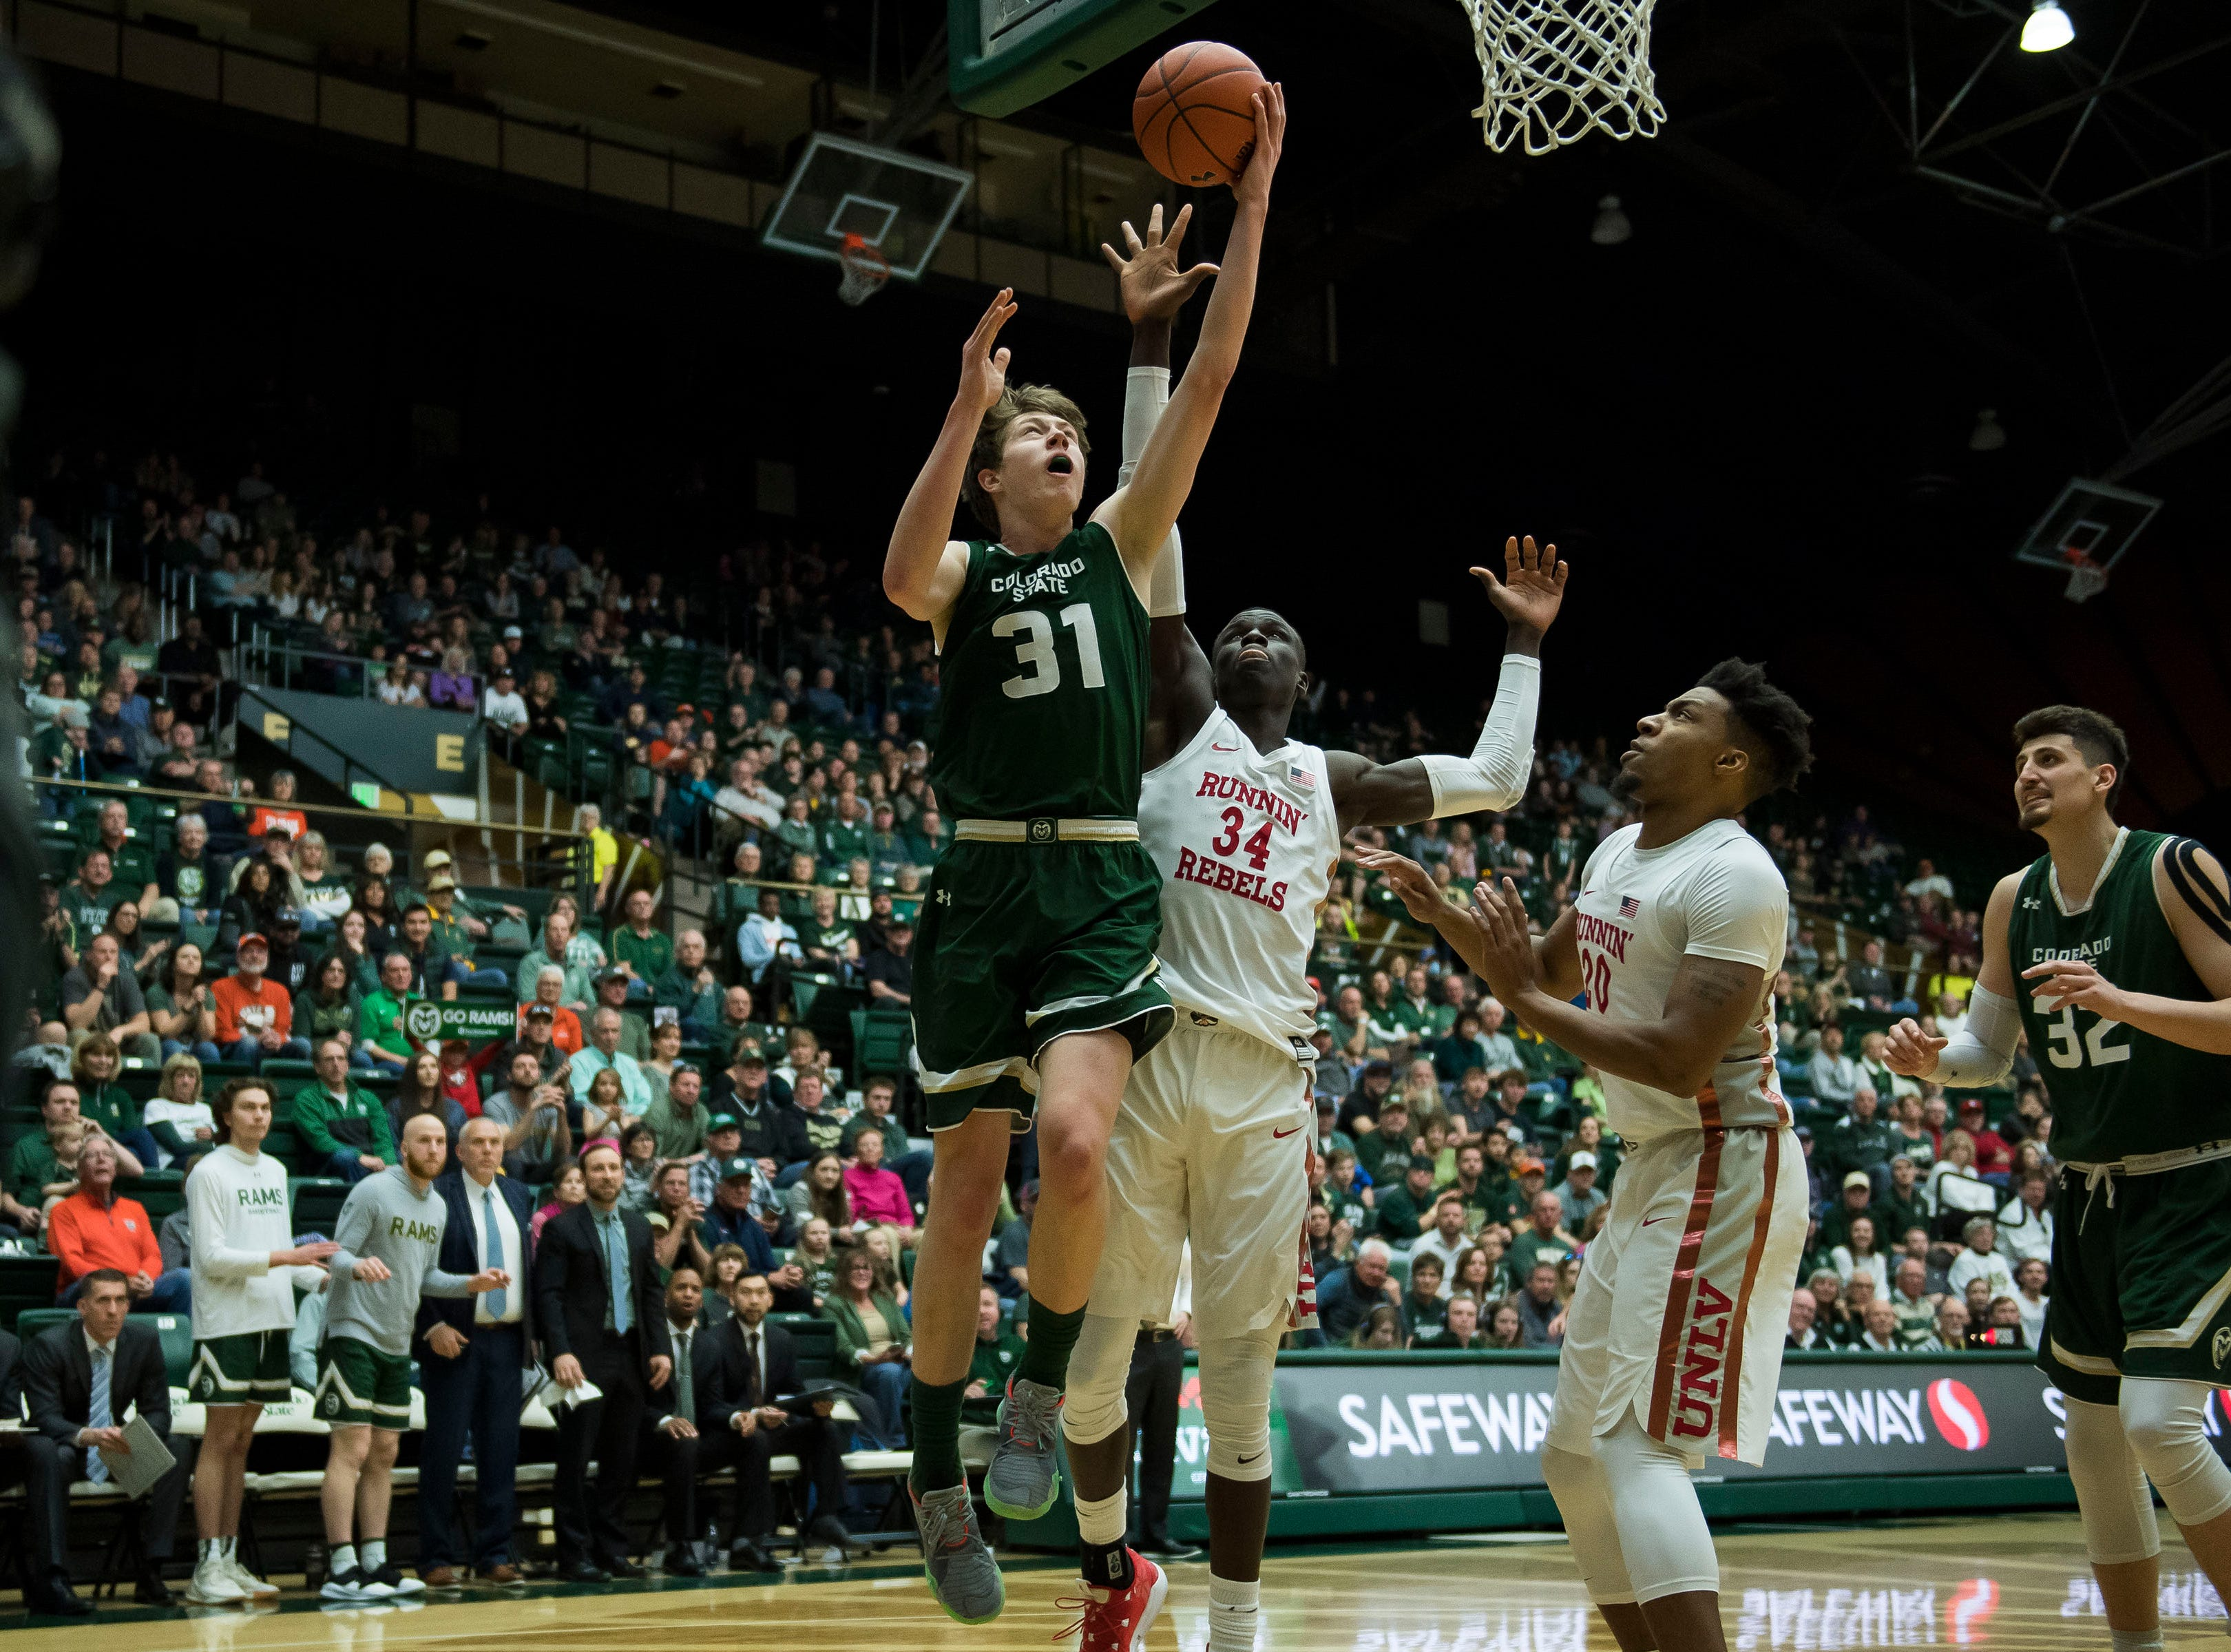 Colorado State University freshman forward Adam Thistlewood (31) puts a shot up during a game against University of Nevada Las Vegas on Saturday, March 9, 2019, at Moby Arena in Fort Collins, Colo.